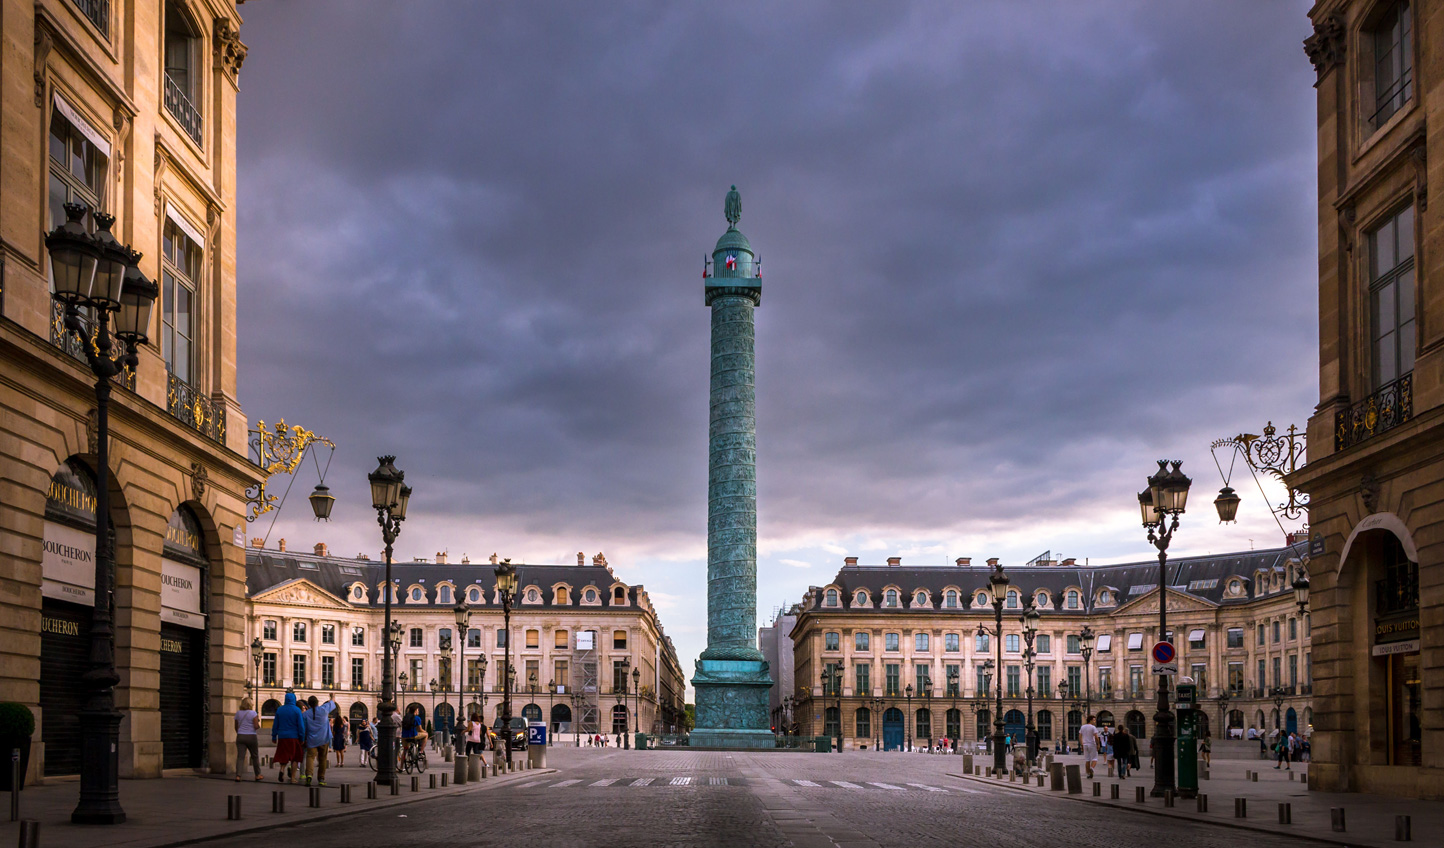 Stay at the Hotel Ritz in an iconic location off Place Vendome